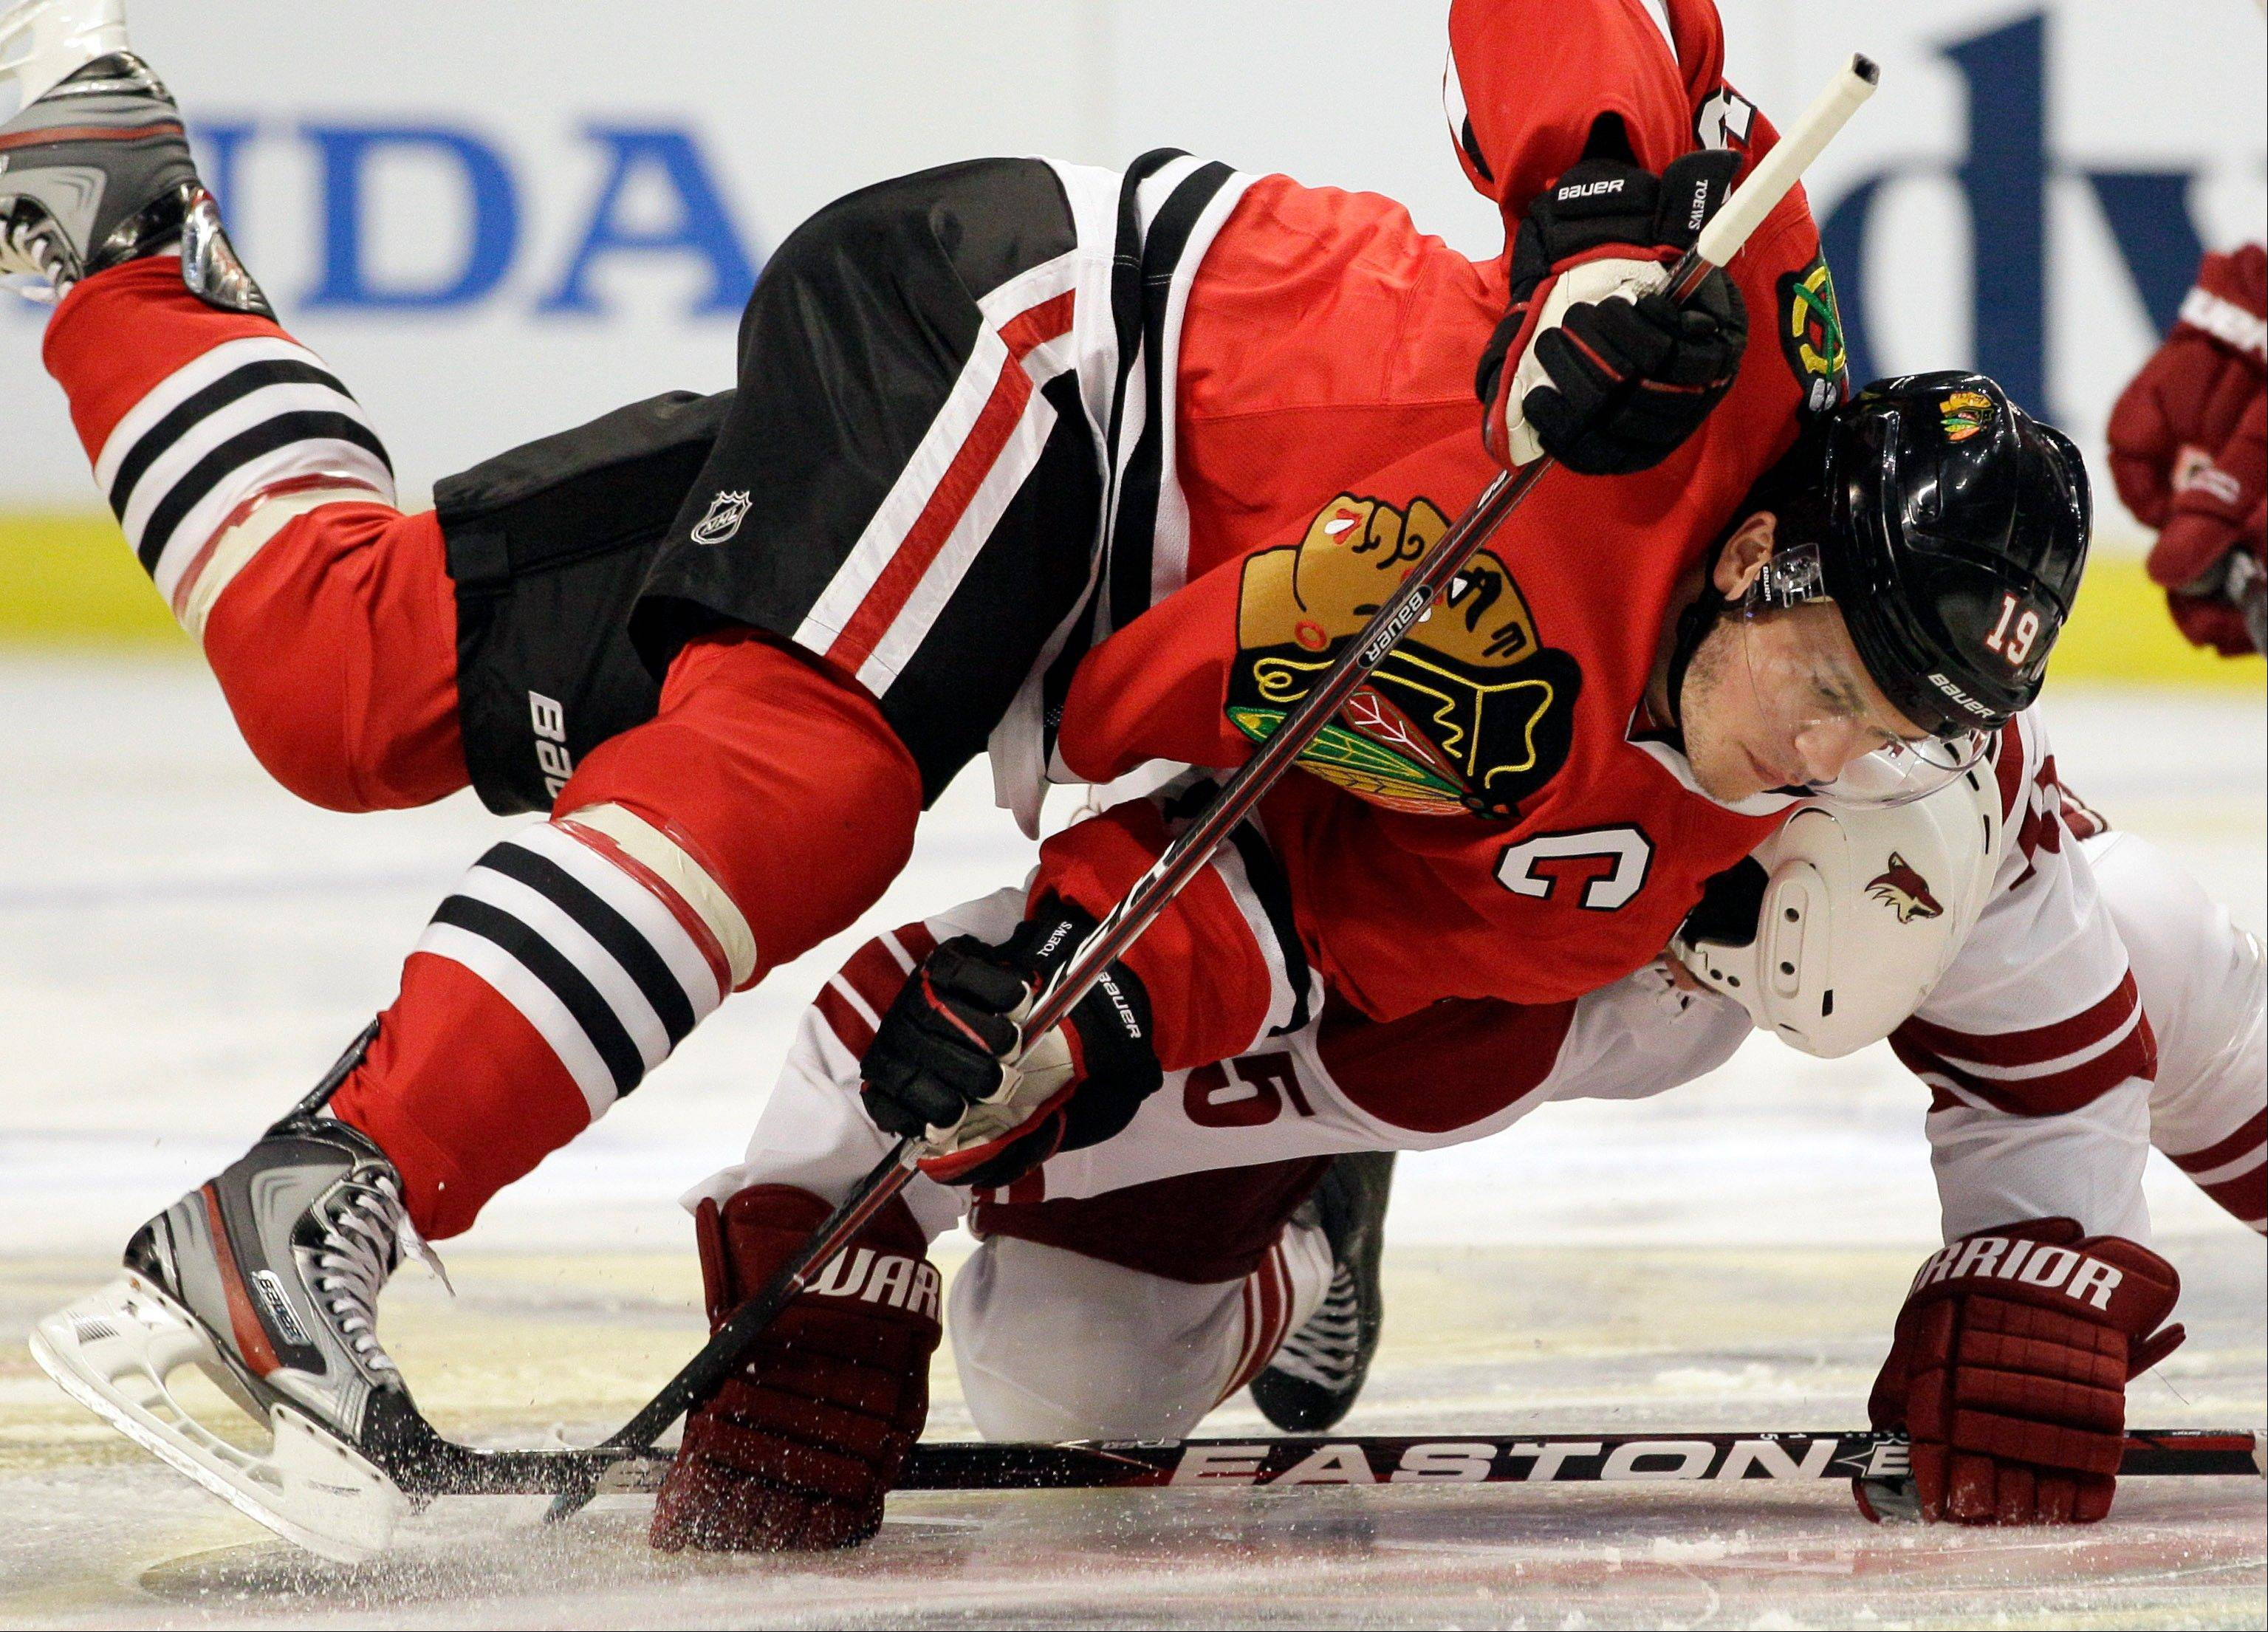 Chicago Blackhawks' Jonathan Toews (19) battles for the puck with Phoenix Coyotes' Boyd Gordon (15) during the first period of Game 4 of an NHL hockey Stanley Cup first-round playoff series in Chicago, Thursday, April 19, 2012.